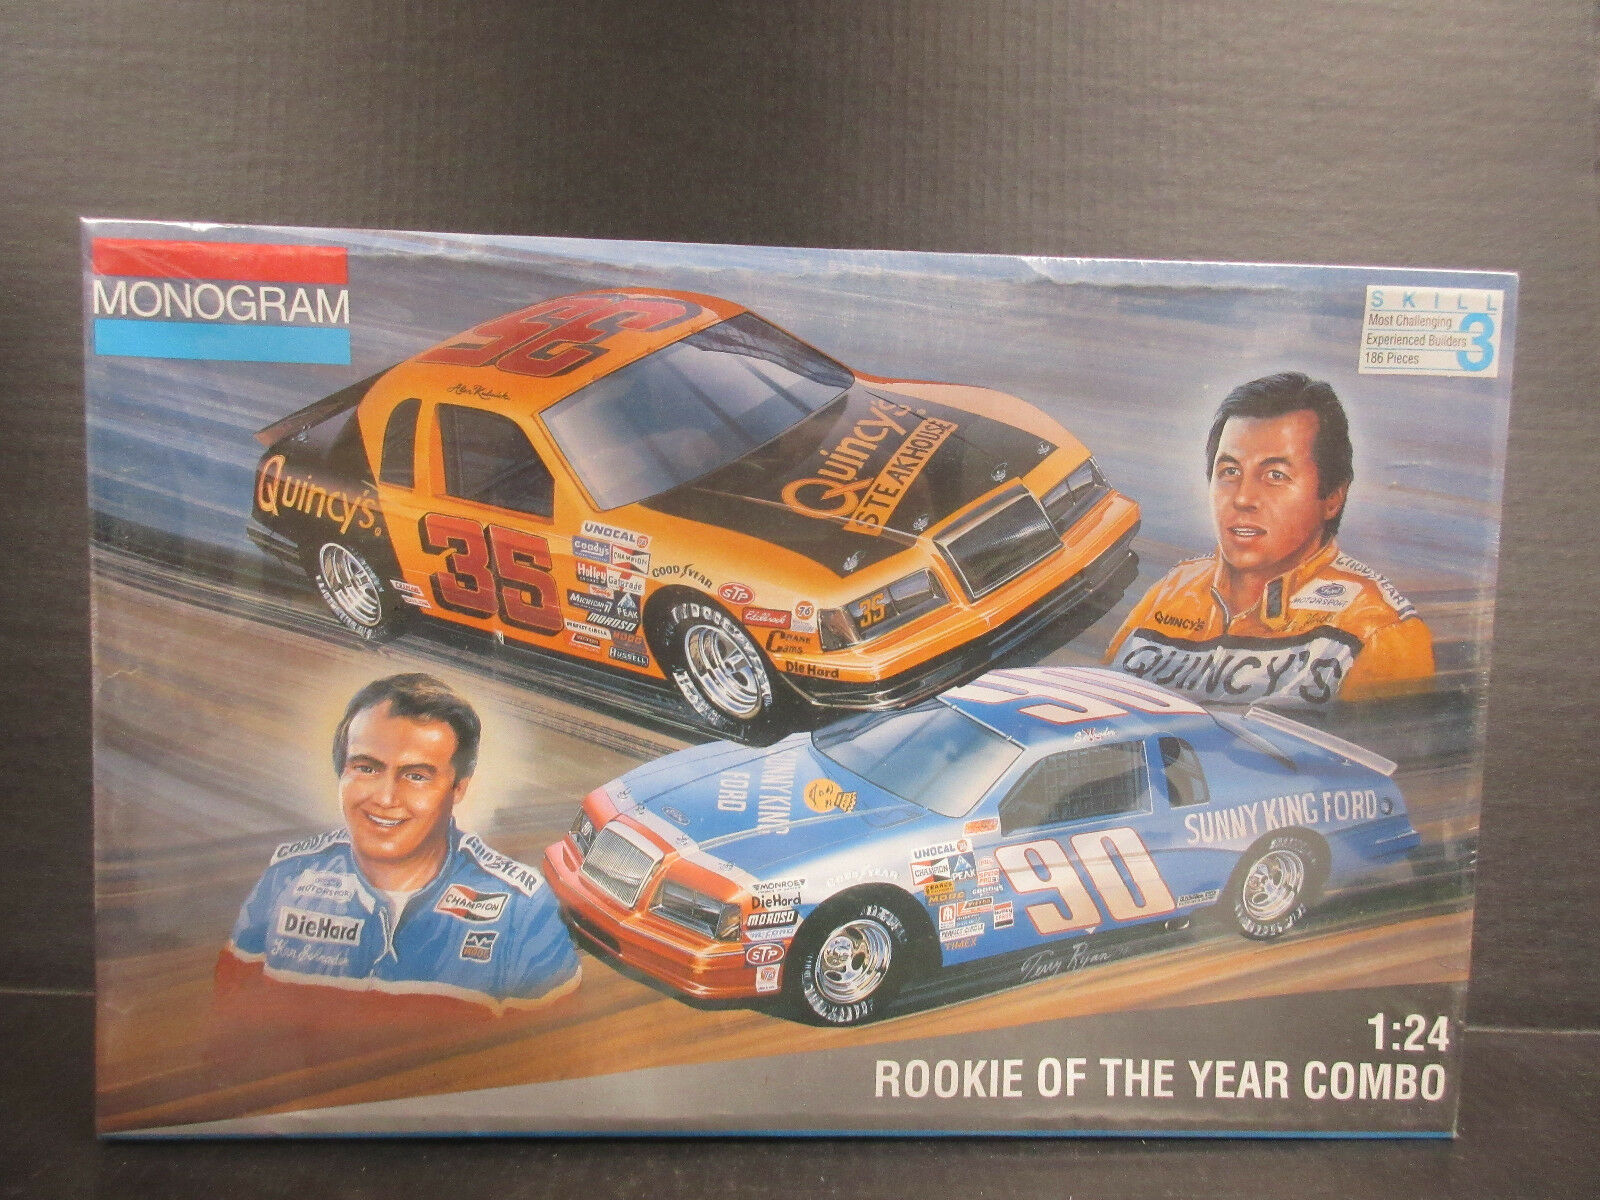 1994 Monogram Rookie of the Year Combo 1:24th Model Kits  6368